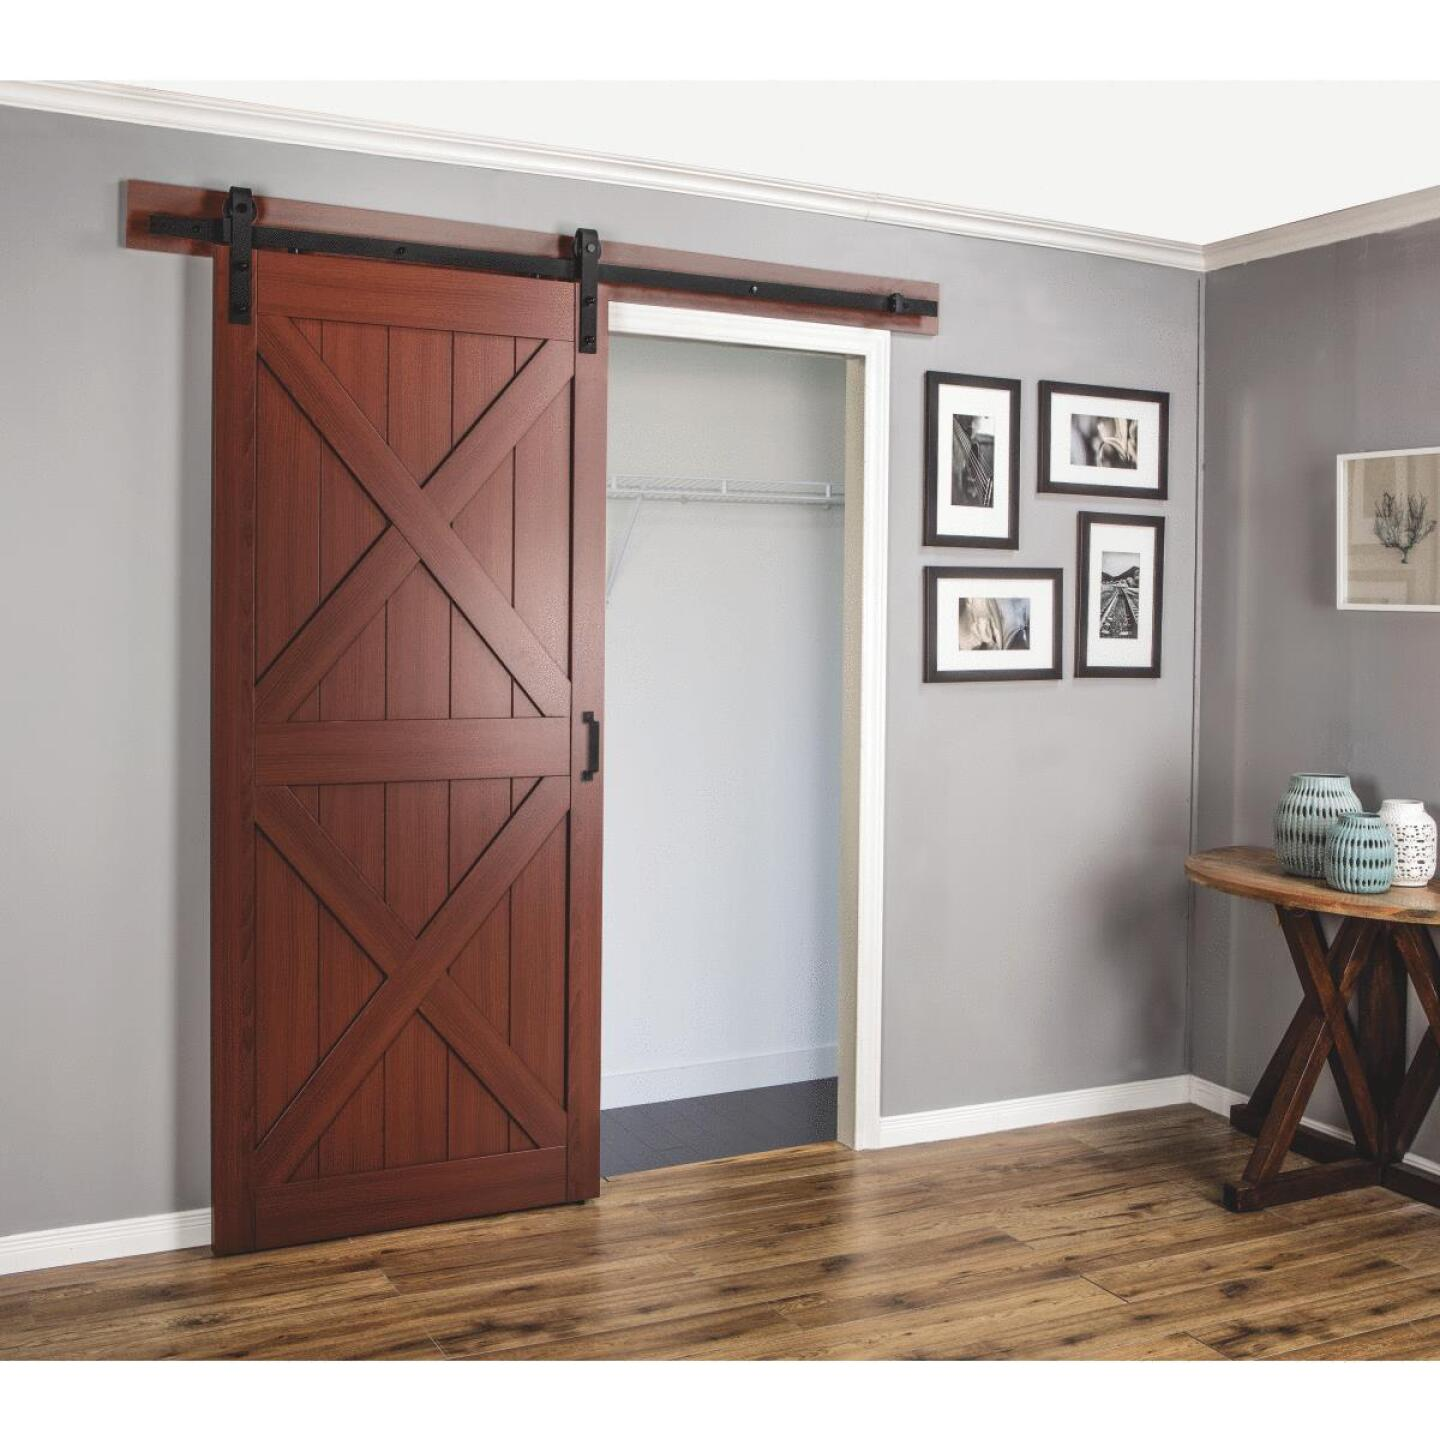 Erias Home Designs Sagrada 36 In. x 84 In. x 1-3/8 In. Double X-Style Barn Door Kit Image 2